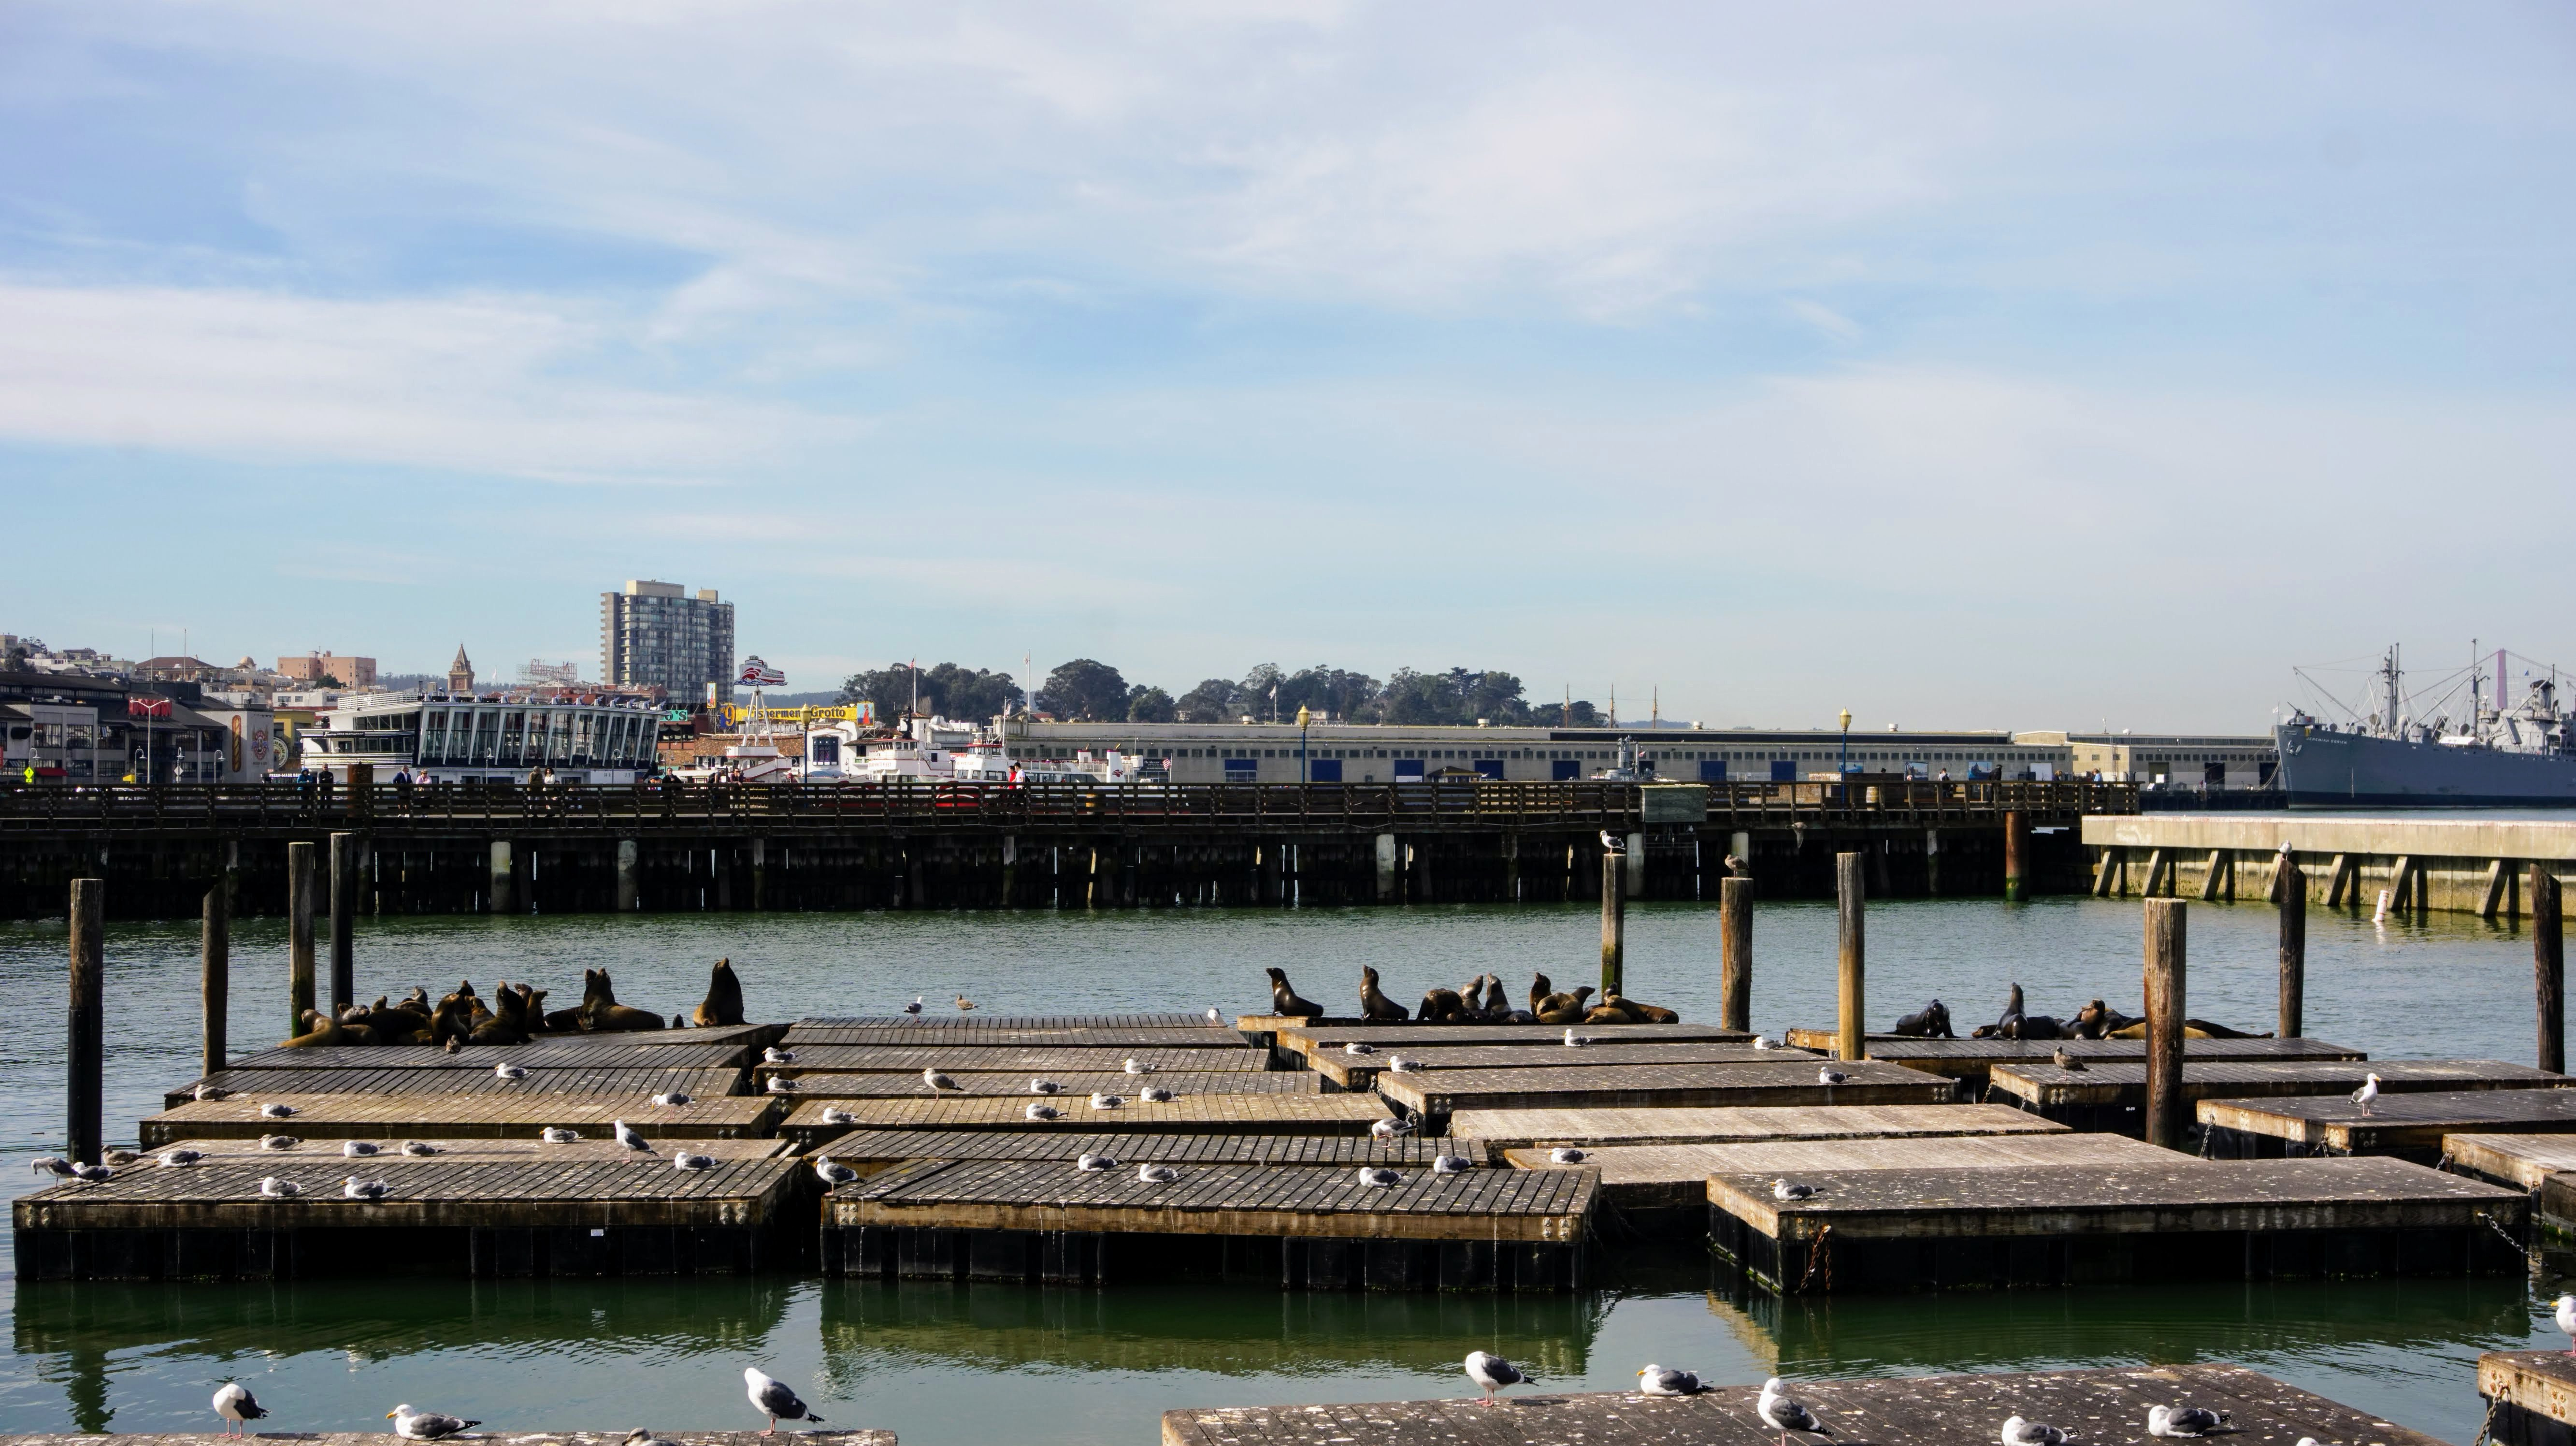 Sea lions resting in the sunshine at Pier 39 in San Francisco California